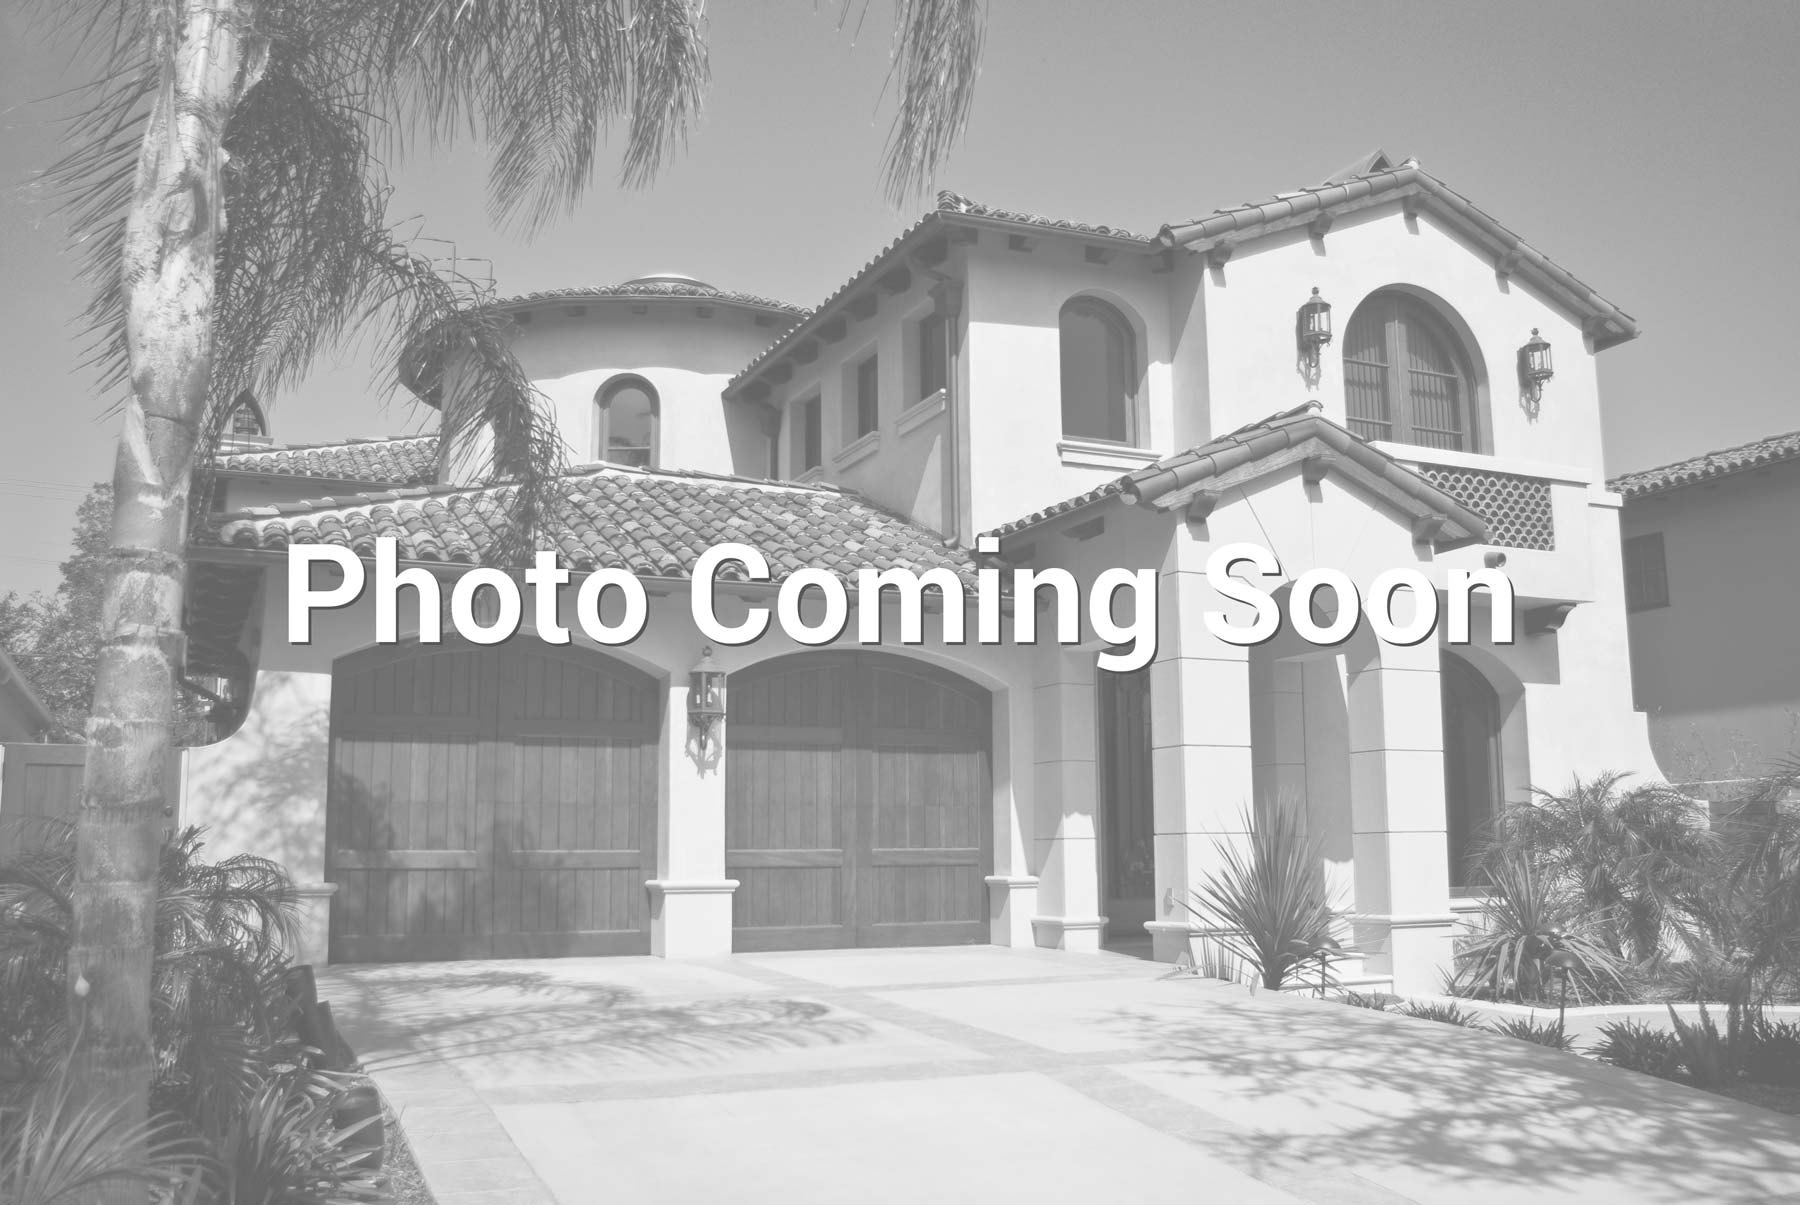 $314,000 - 4Br/4Ba - Home for Sale in Surprise Farms Phase 5, Surprise